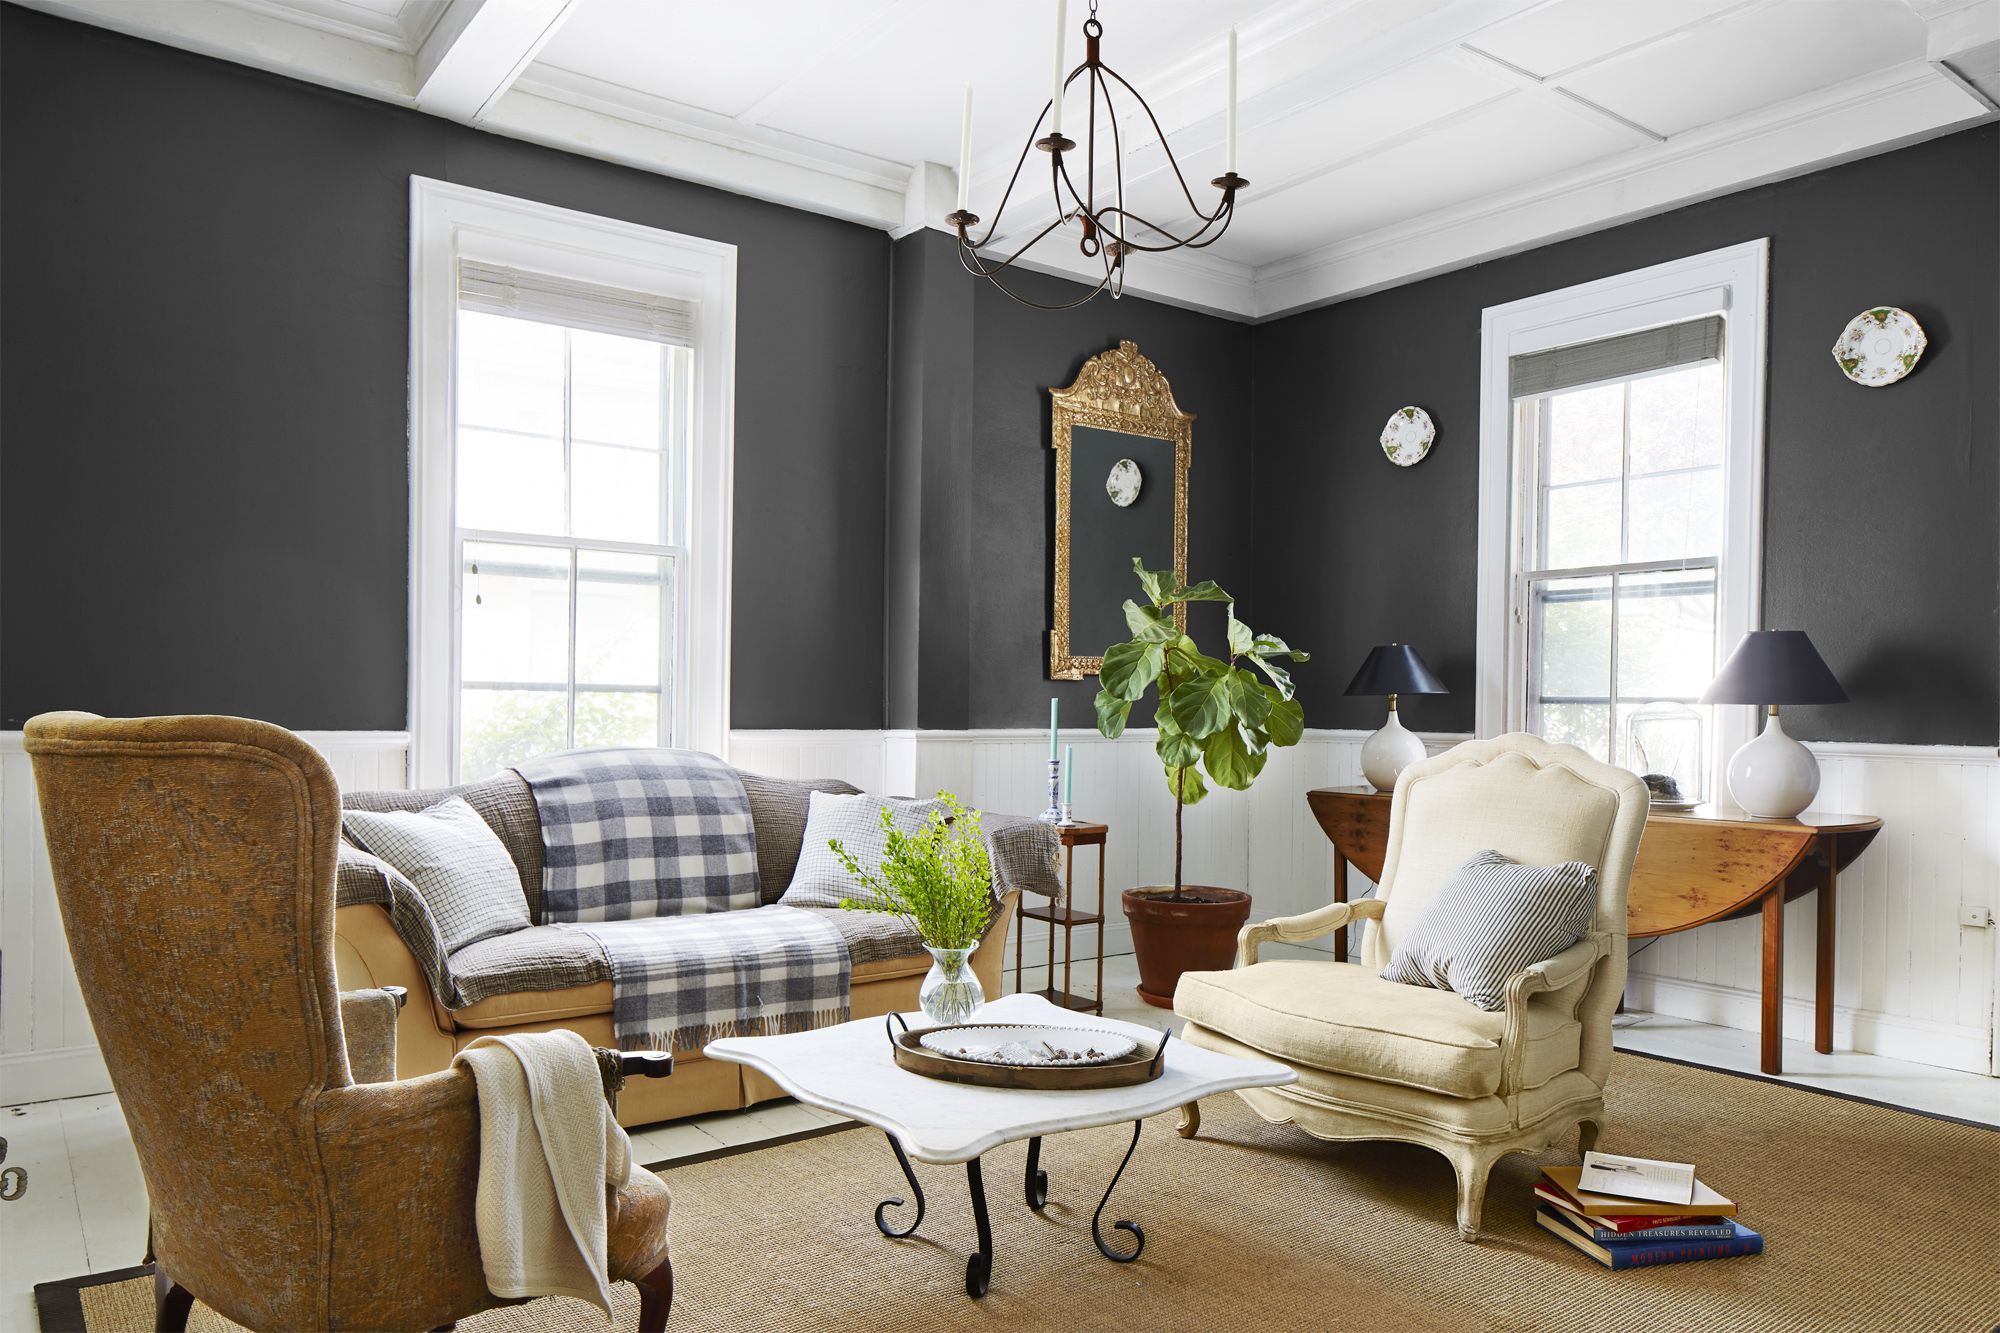 Interior Paint Finishes - How to Pick a Paint Finish